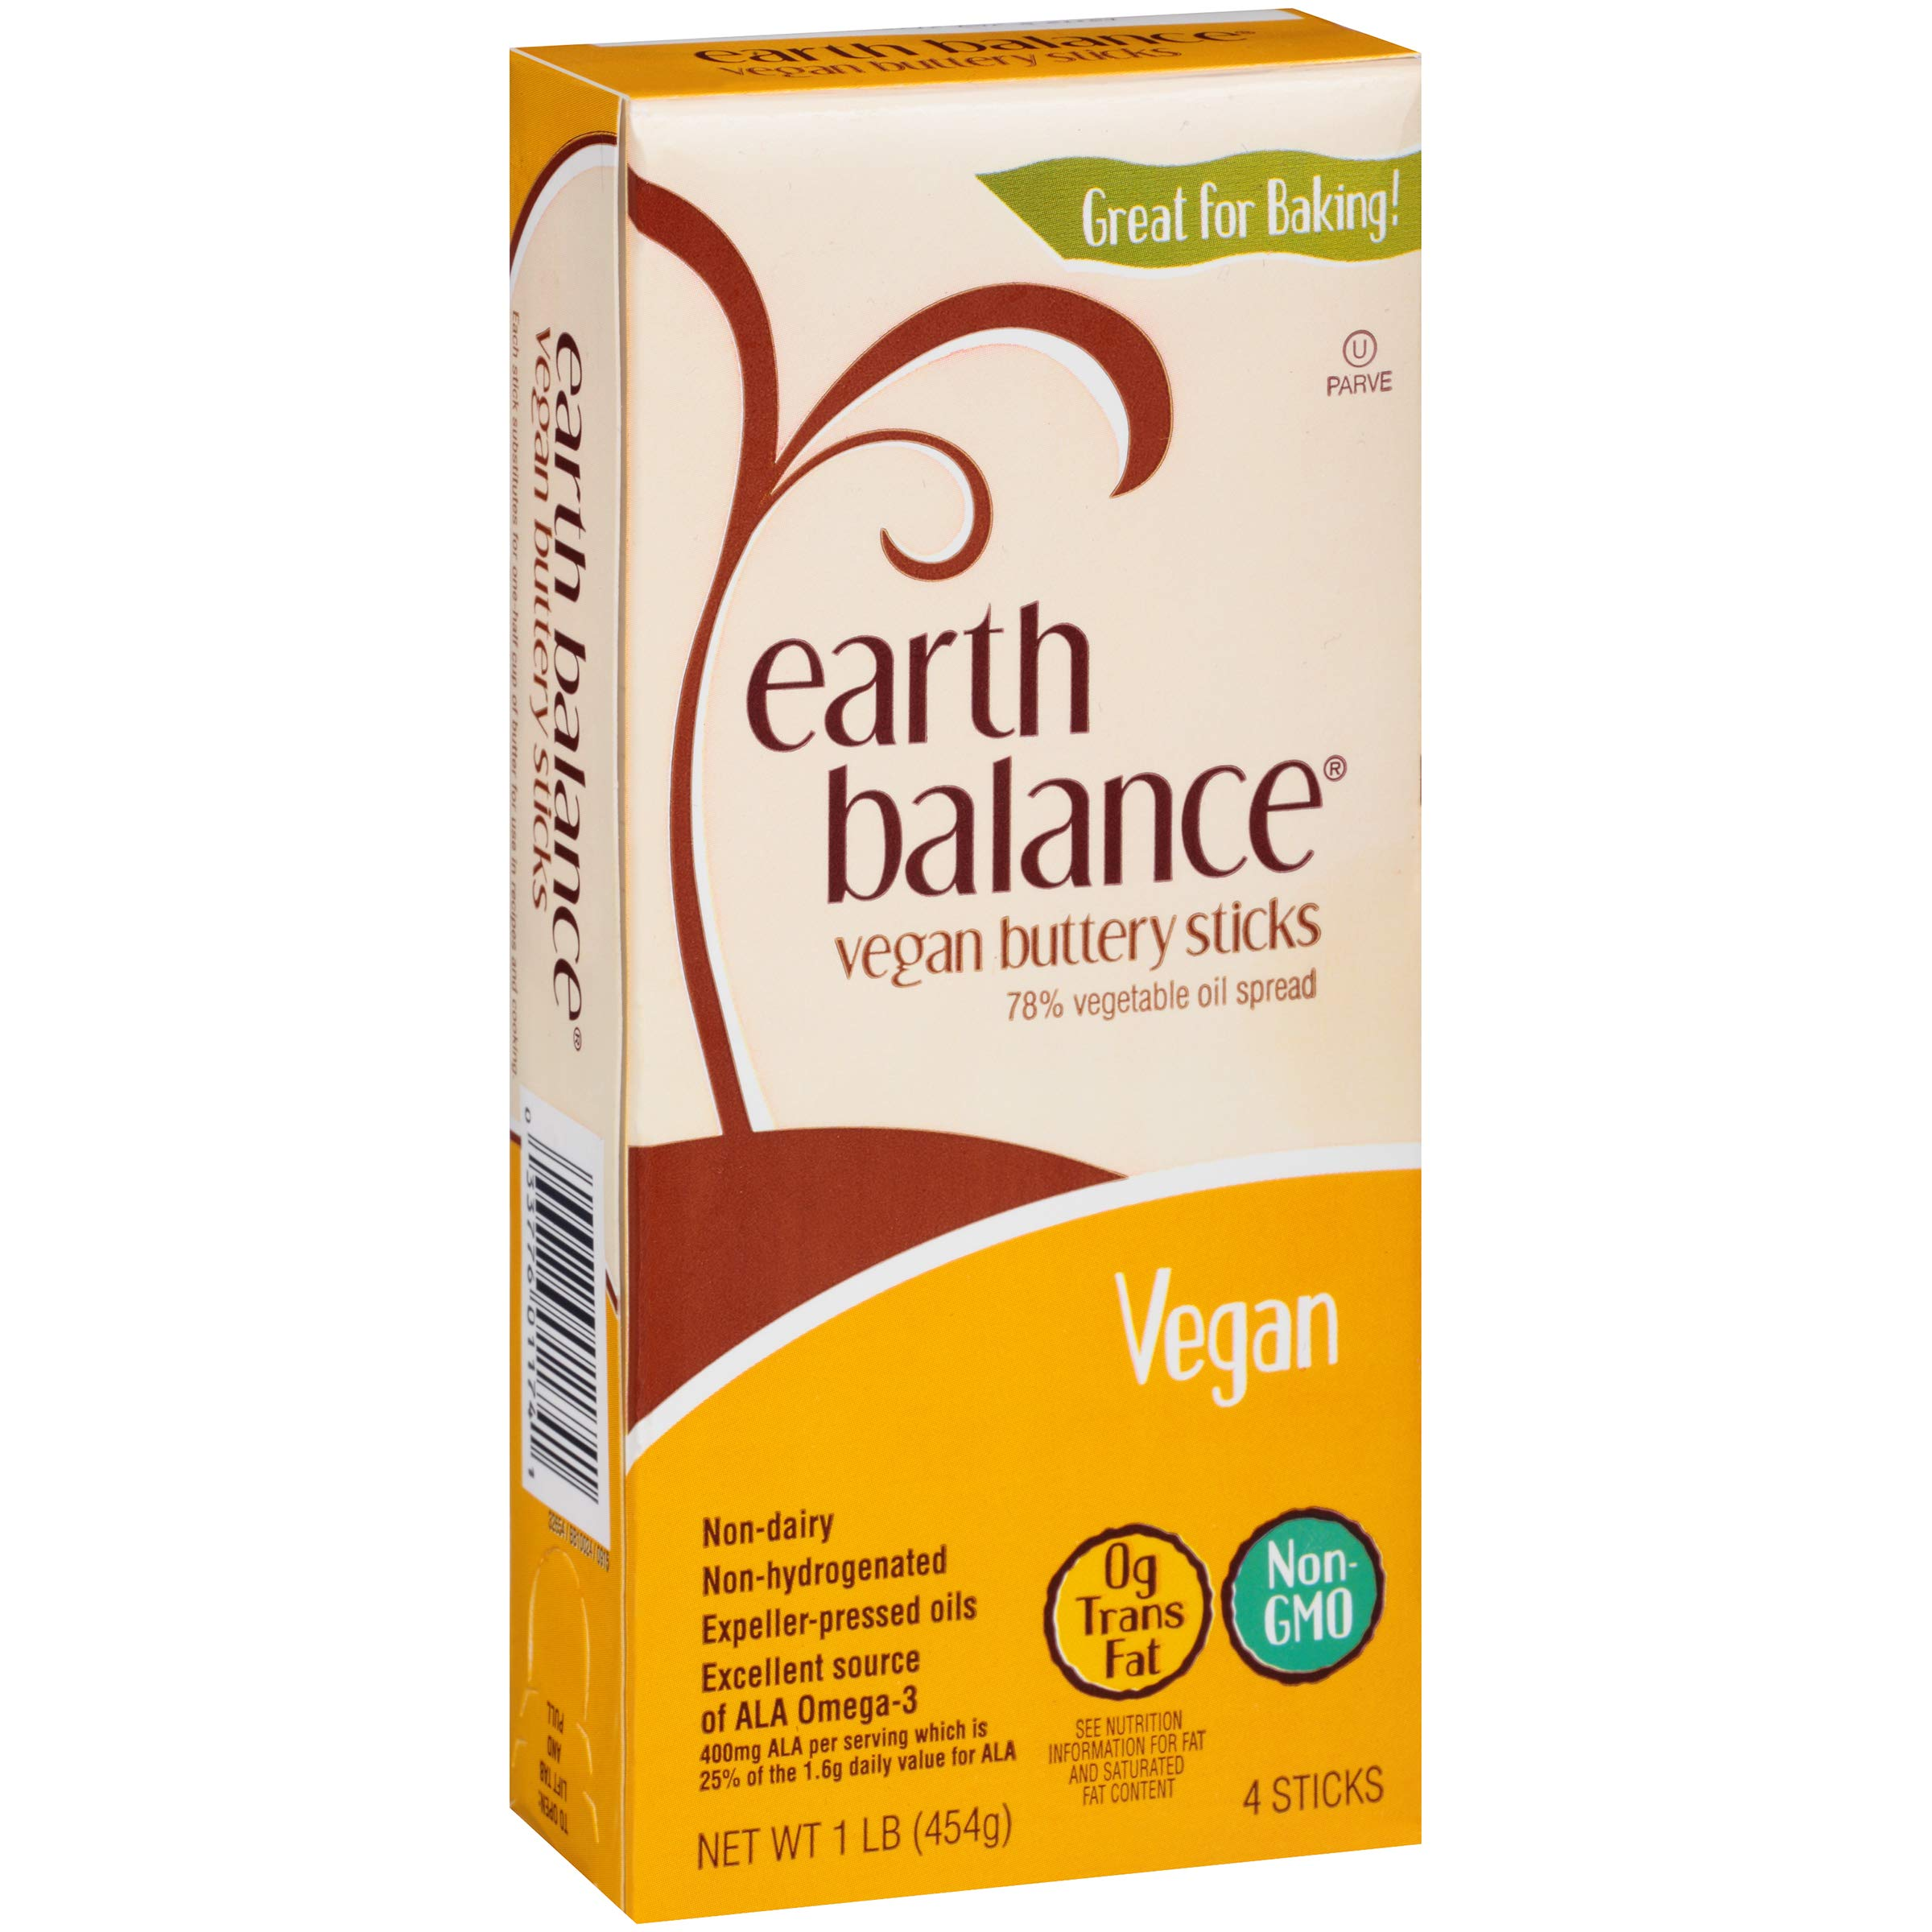 Earth Balance Vegan, Lactose Free, Non-Dairy, Gluten Free, No MSG, Non-GMO Buttery Sticks 16 ounce (Pack of 6)